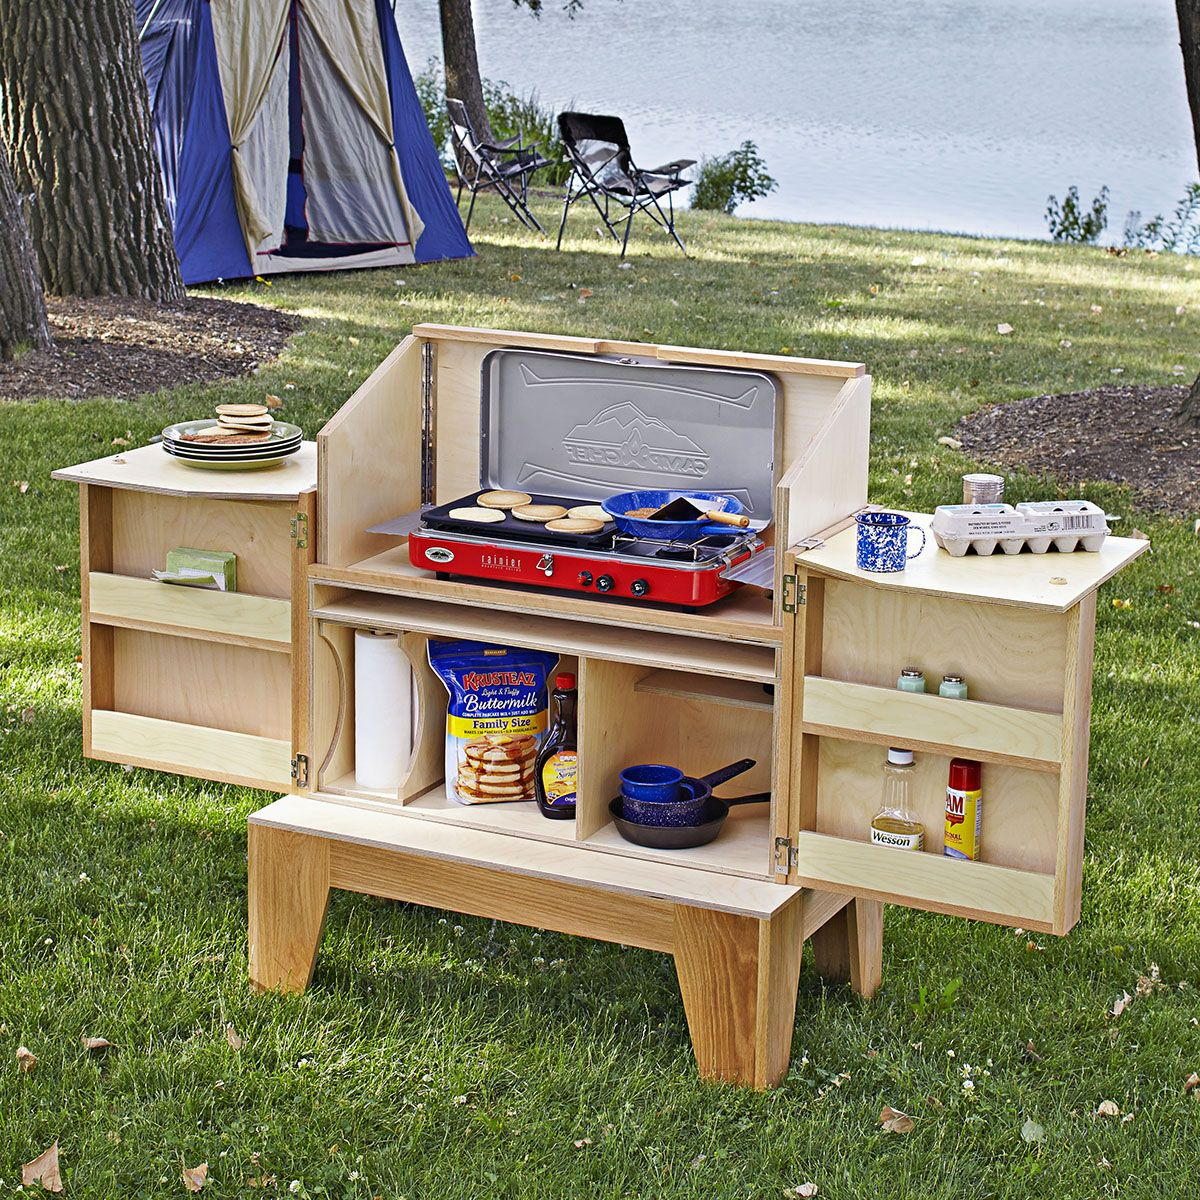 Camp Kitchen Woodworking Plan. Stash All Your Campground